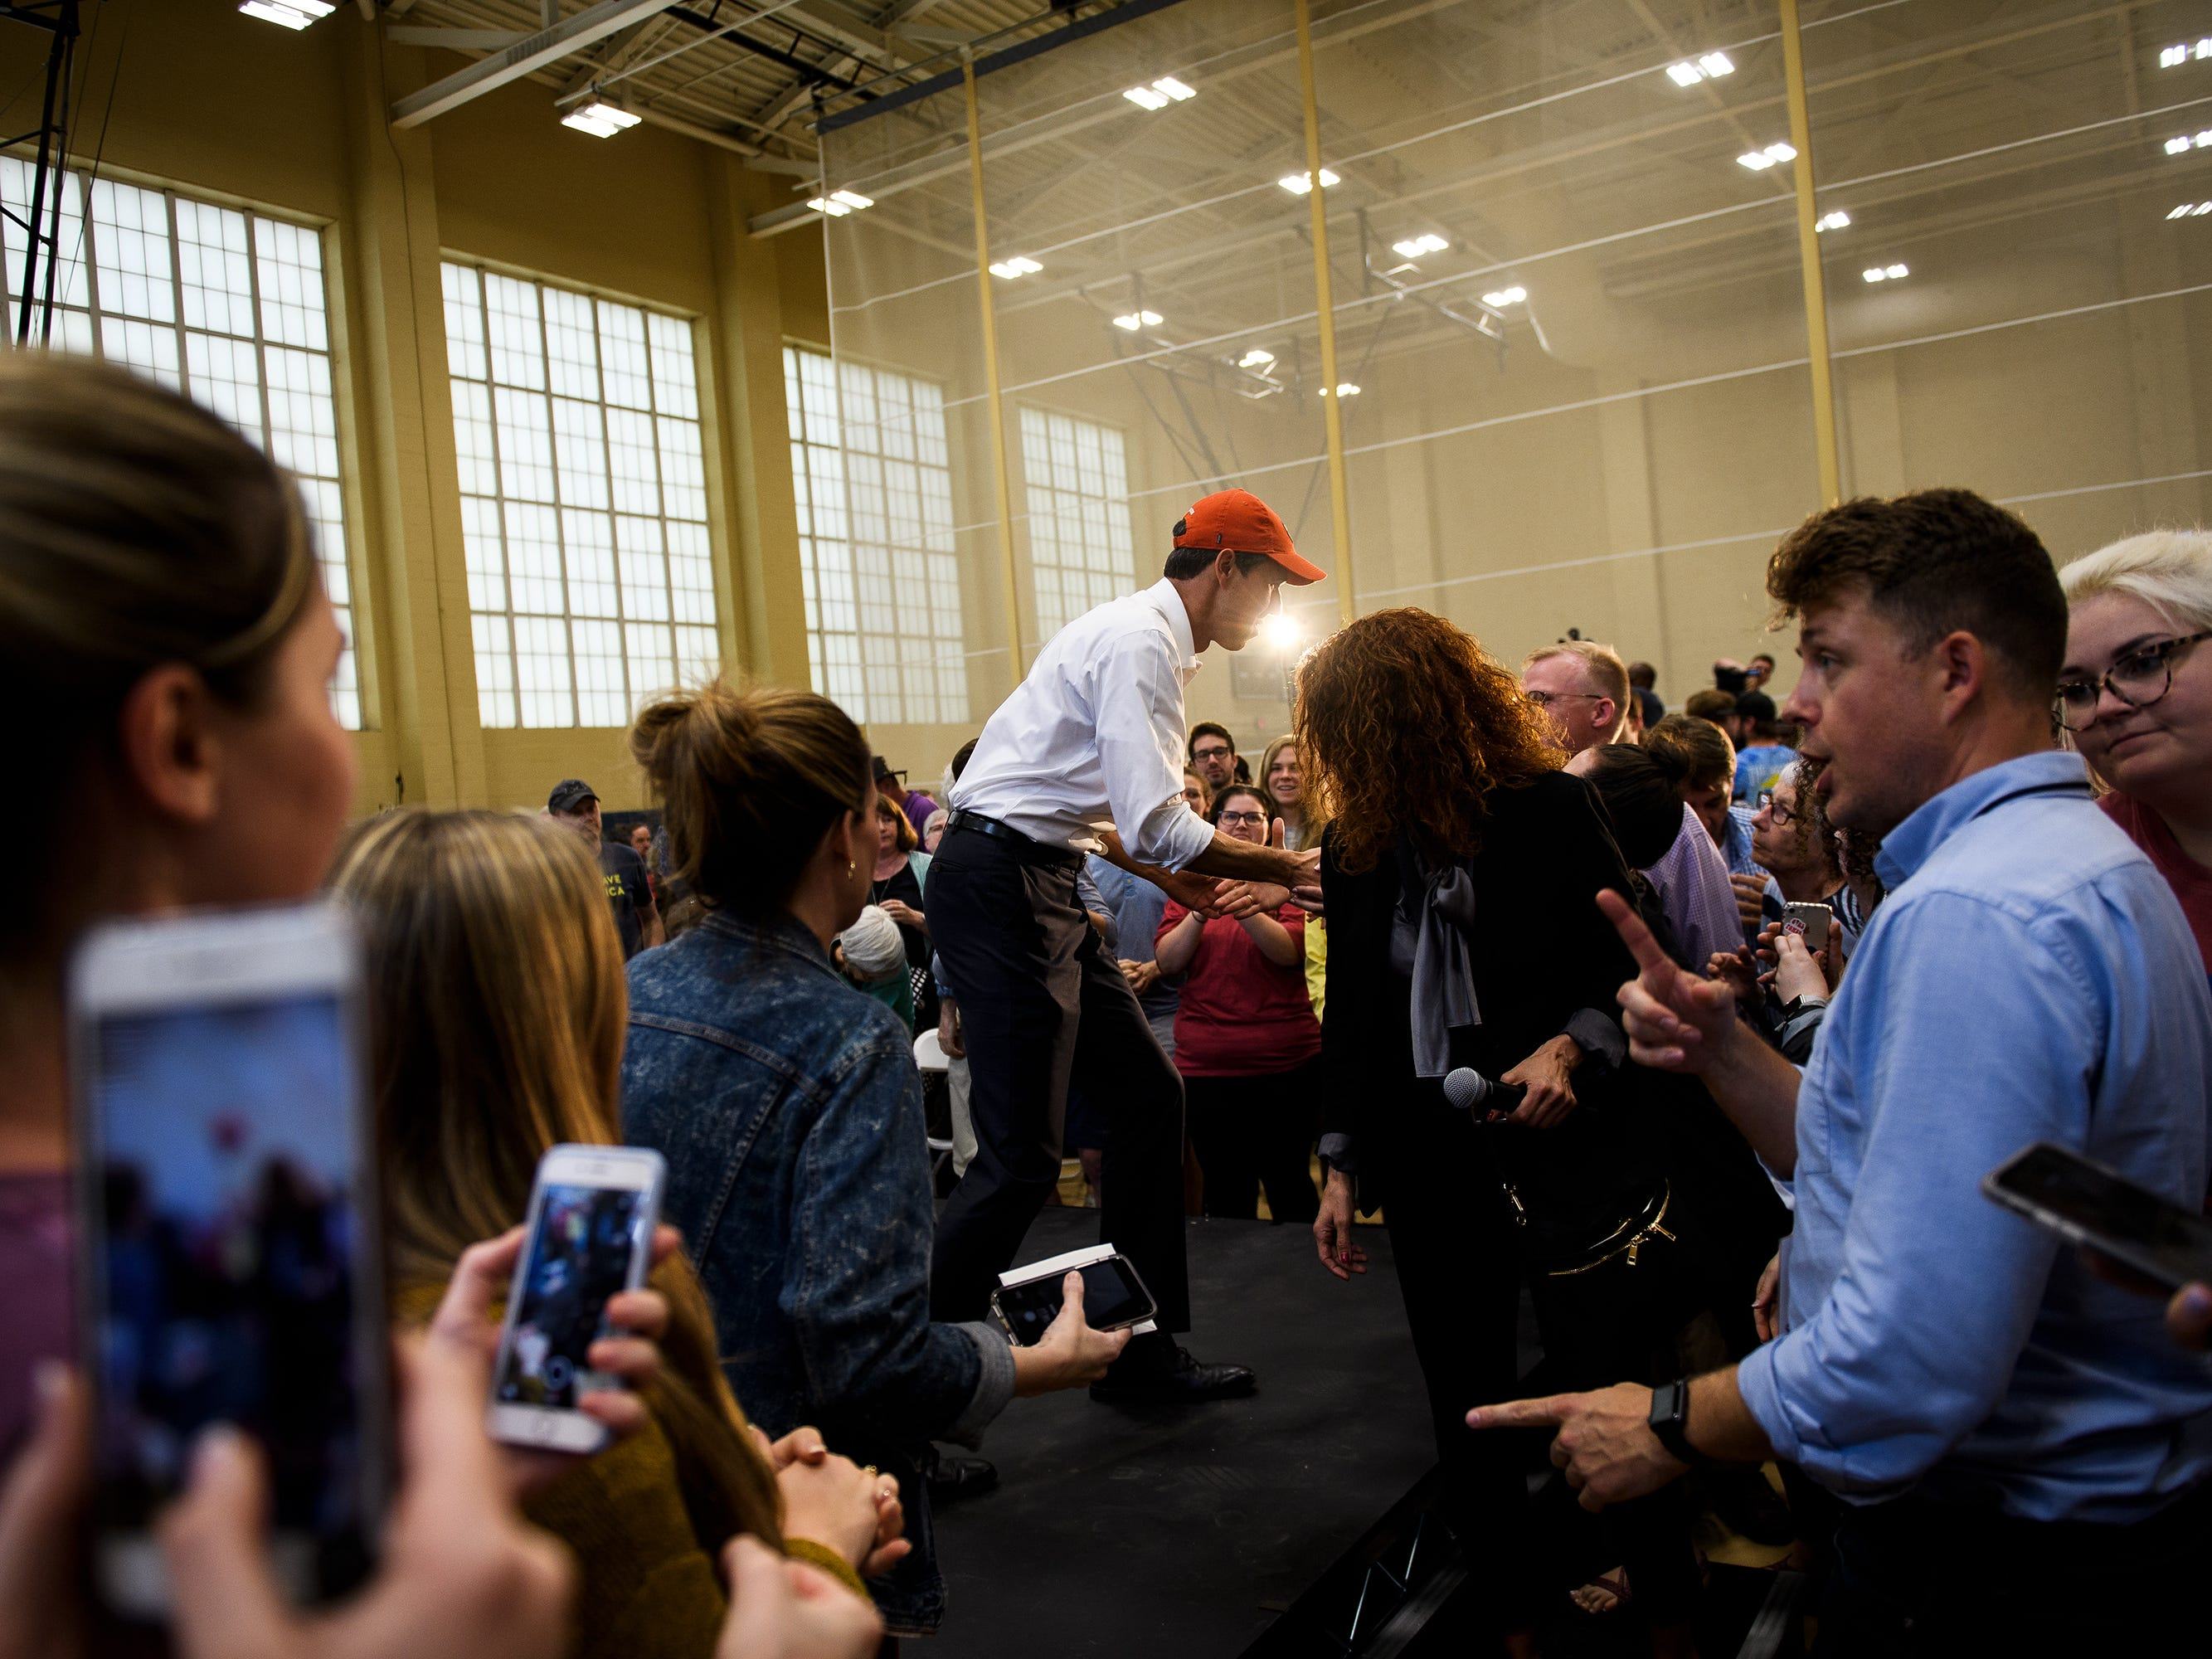 Democratic presidential hopeful Beto O'Rourke shakes hands with supporters as he ends his rally at Clemson University's Five Recreation Center Sunday, April 14, 2019.